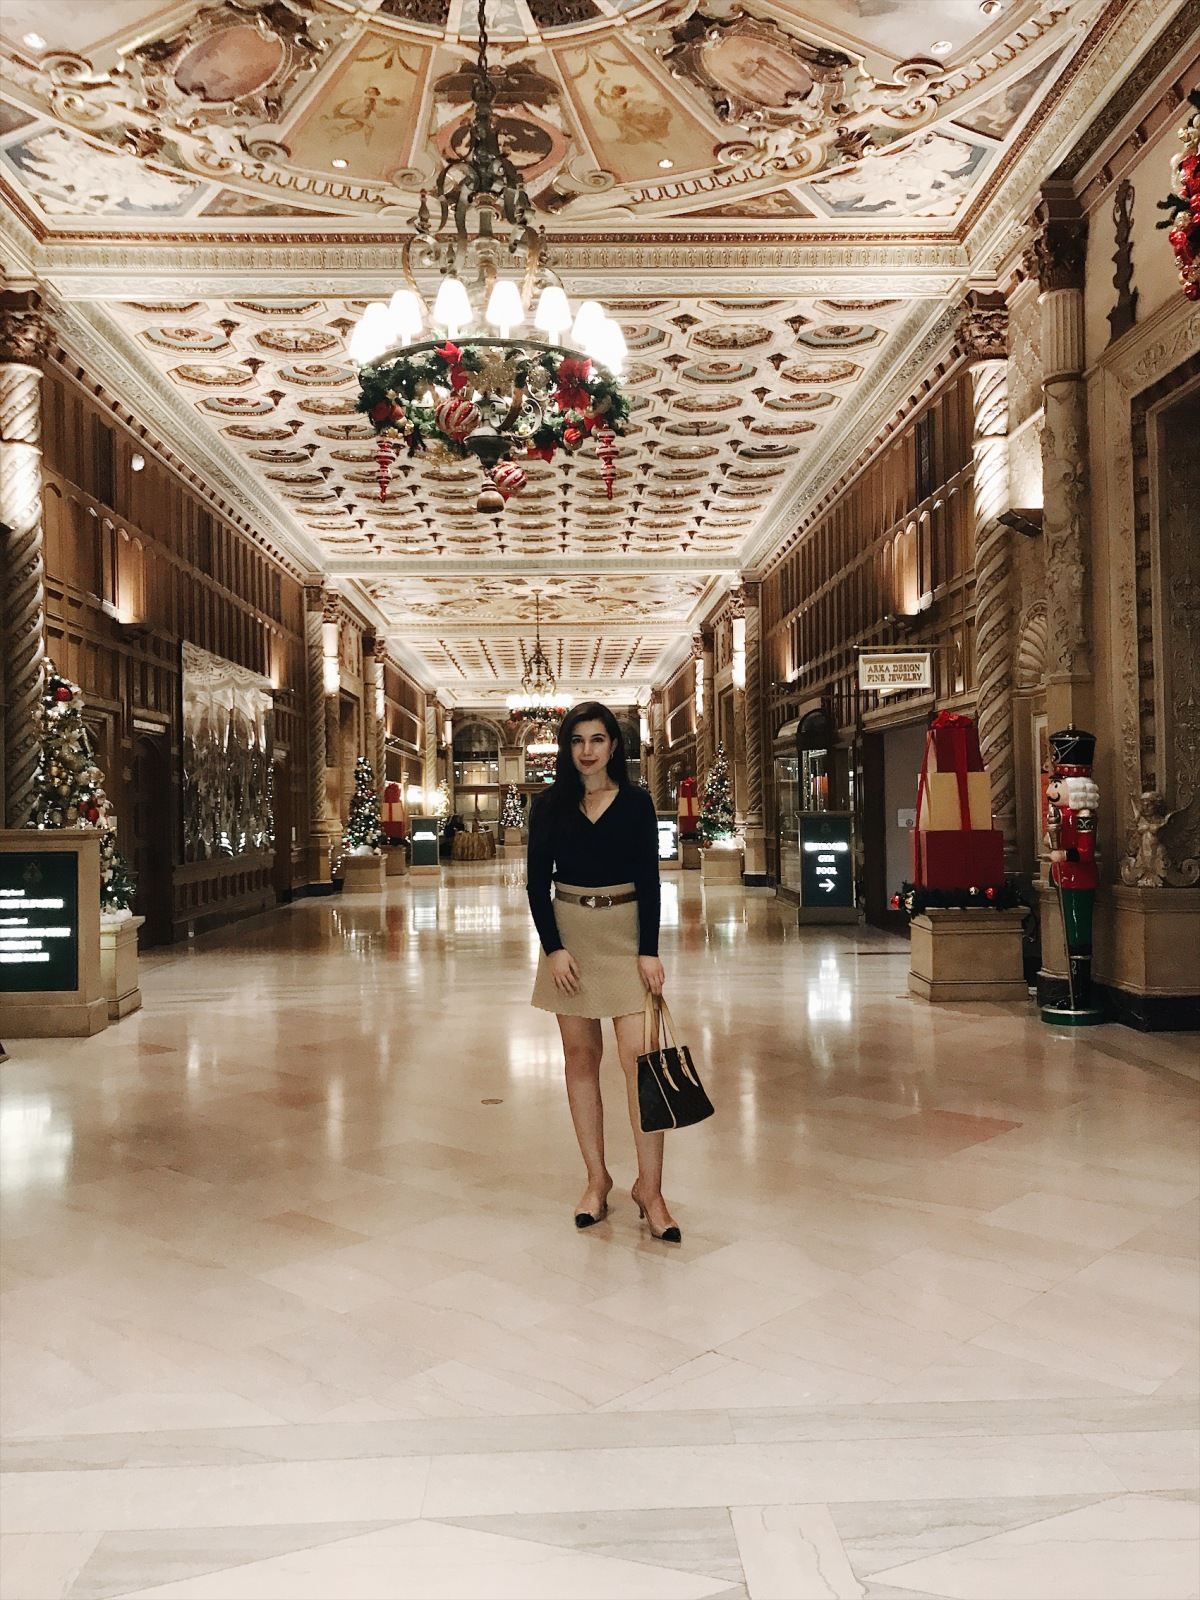 The Millenium Biltmore Hotel, historic hotel, Christmas outfit, Christmas traditions, cashmere sweater, Coach heels, Calvin Klein, Cynthia Rowley, Louis Vuitton, lookbook, fashion blogger, style blogger, Christmas style, Christmas lookbook, winter outfit